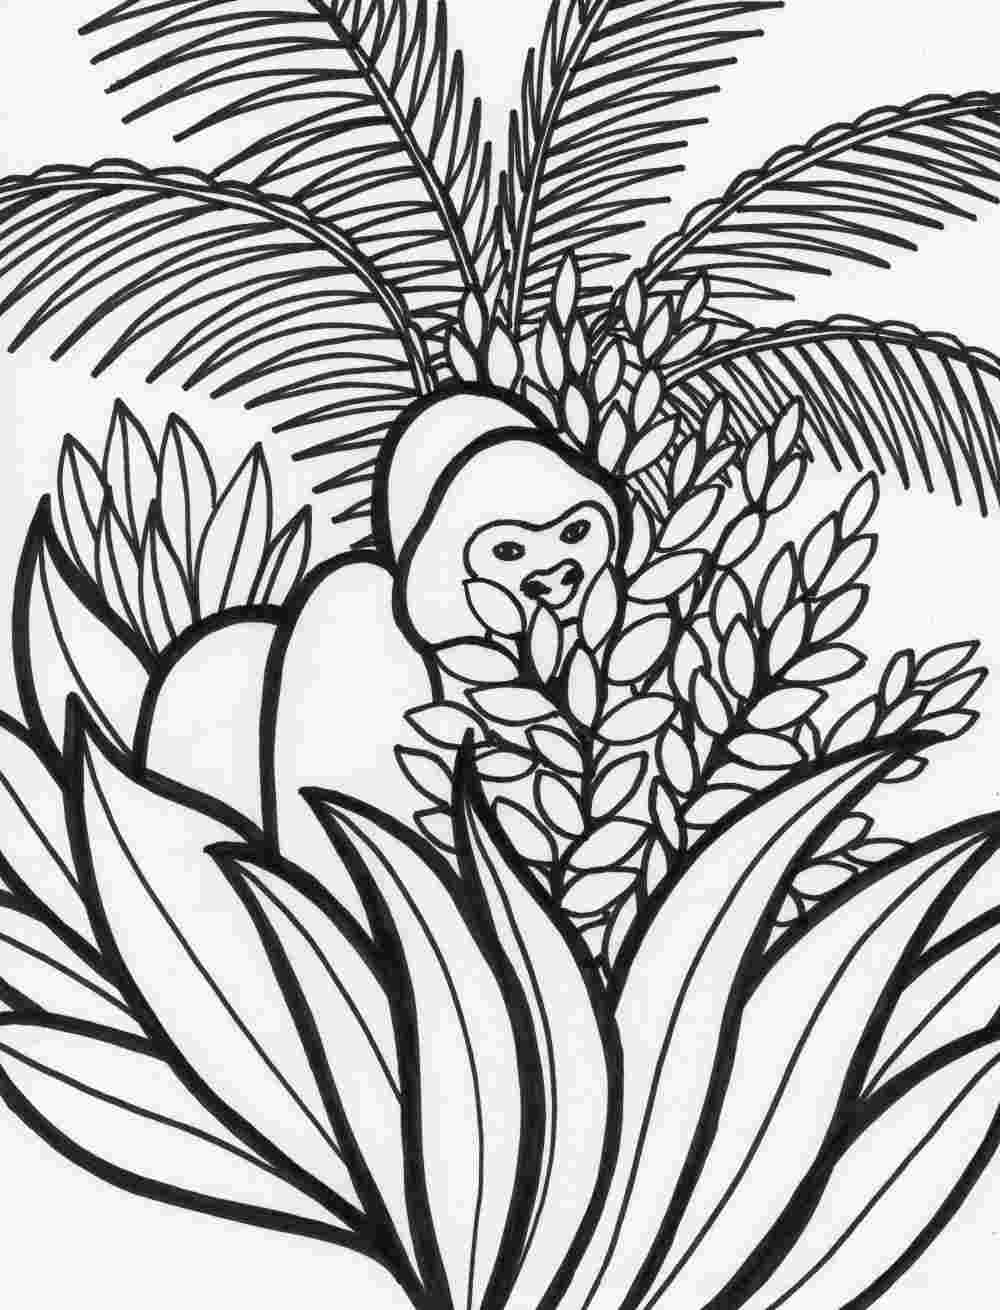 rainforest colouring rainforest drawing for kids at getdrawings free download rainforest colouring